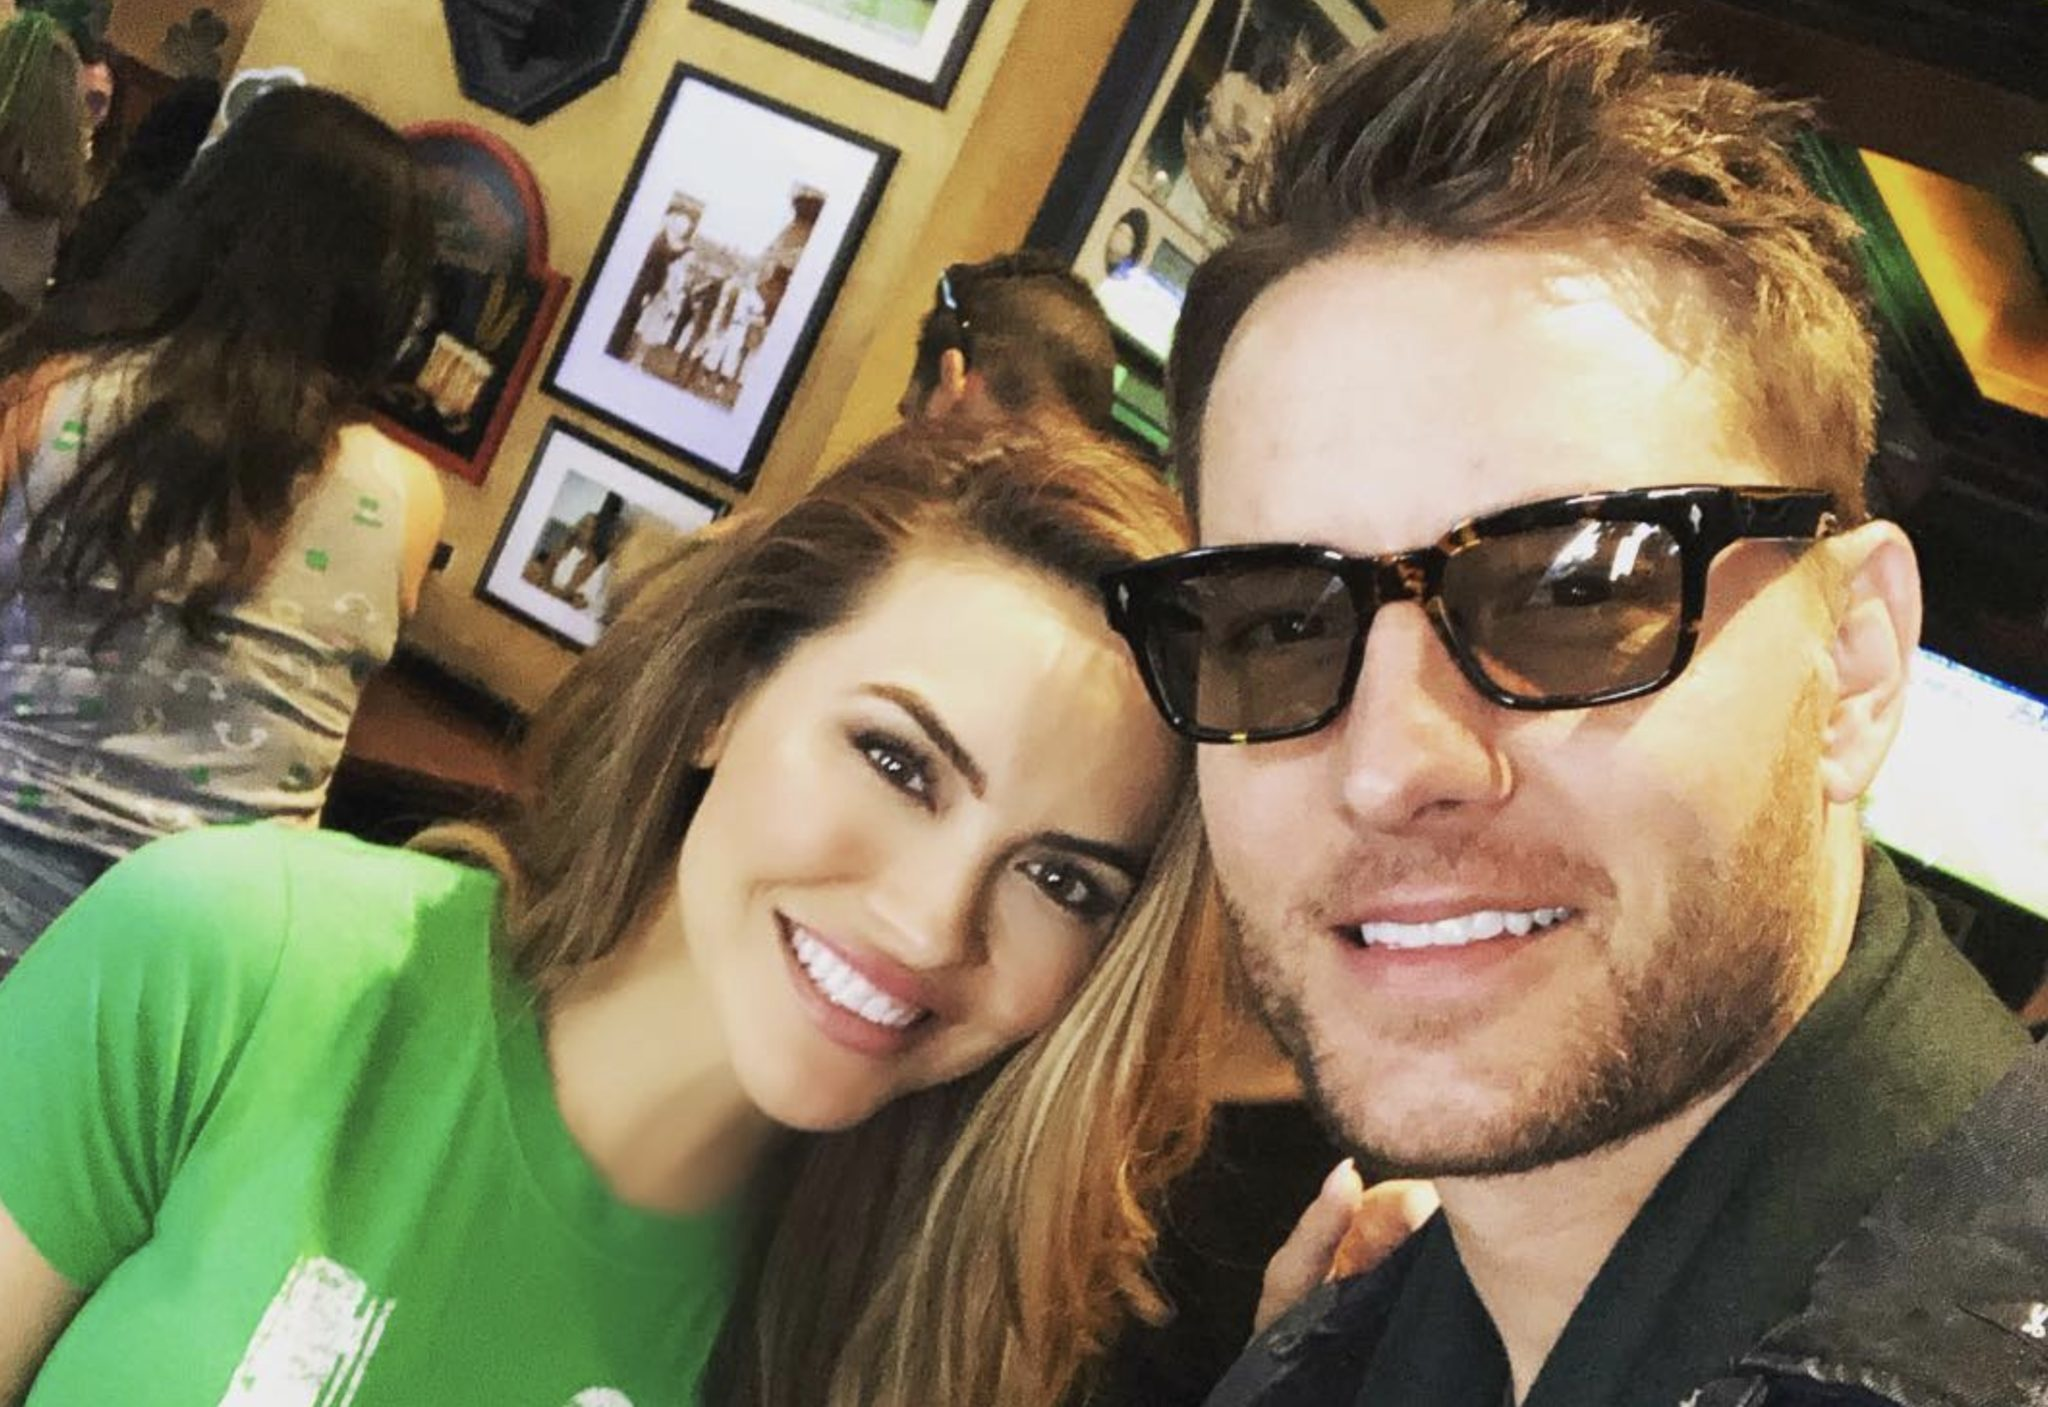 Chrishell Stause Hartley, Justin Hartley, This Is Us-https://www.instagram.com/p/BvHqk5eHof7/